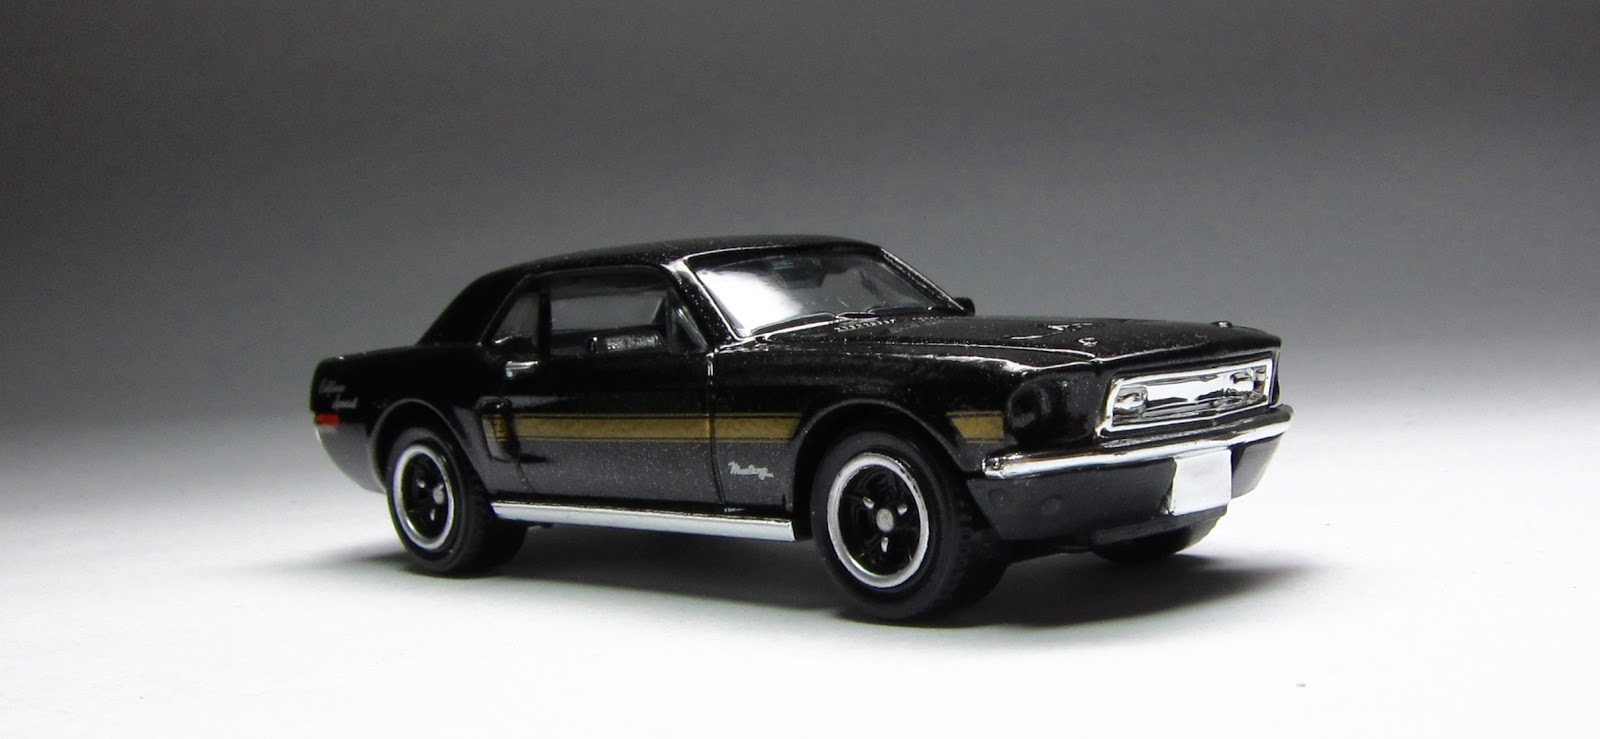 First Look 2015 Matchbox 68 Ford Mustang Gt Cs In Black California Special Has Taken A Delicate Approach To Their Beloved It Seems After Few Stock Examples Are Made New Designs Come